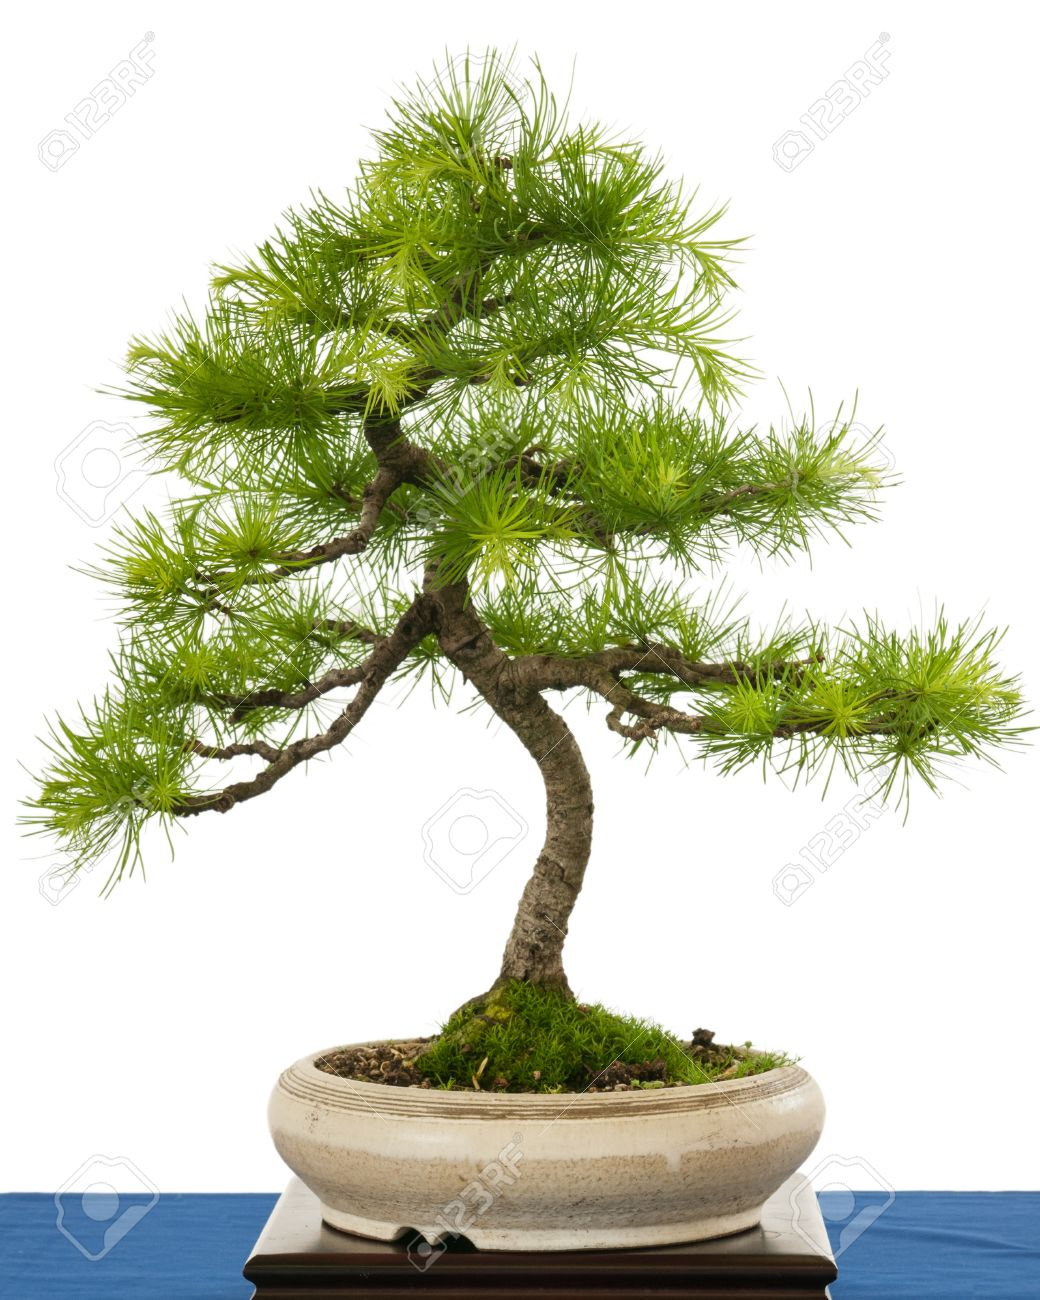 Green European Larch Larix Decudia As Bonsai Tree In A Pot Stock Photo Picture And Royalty Free Image Image 21593730